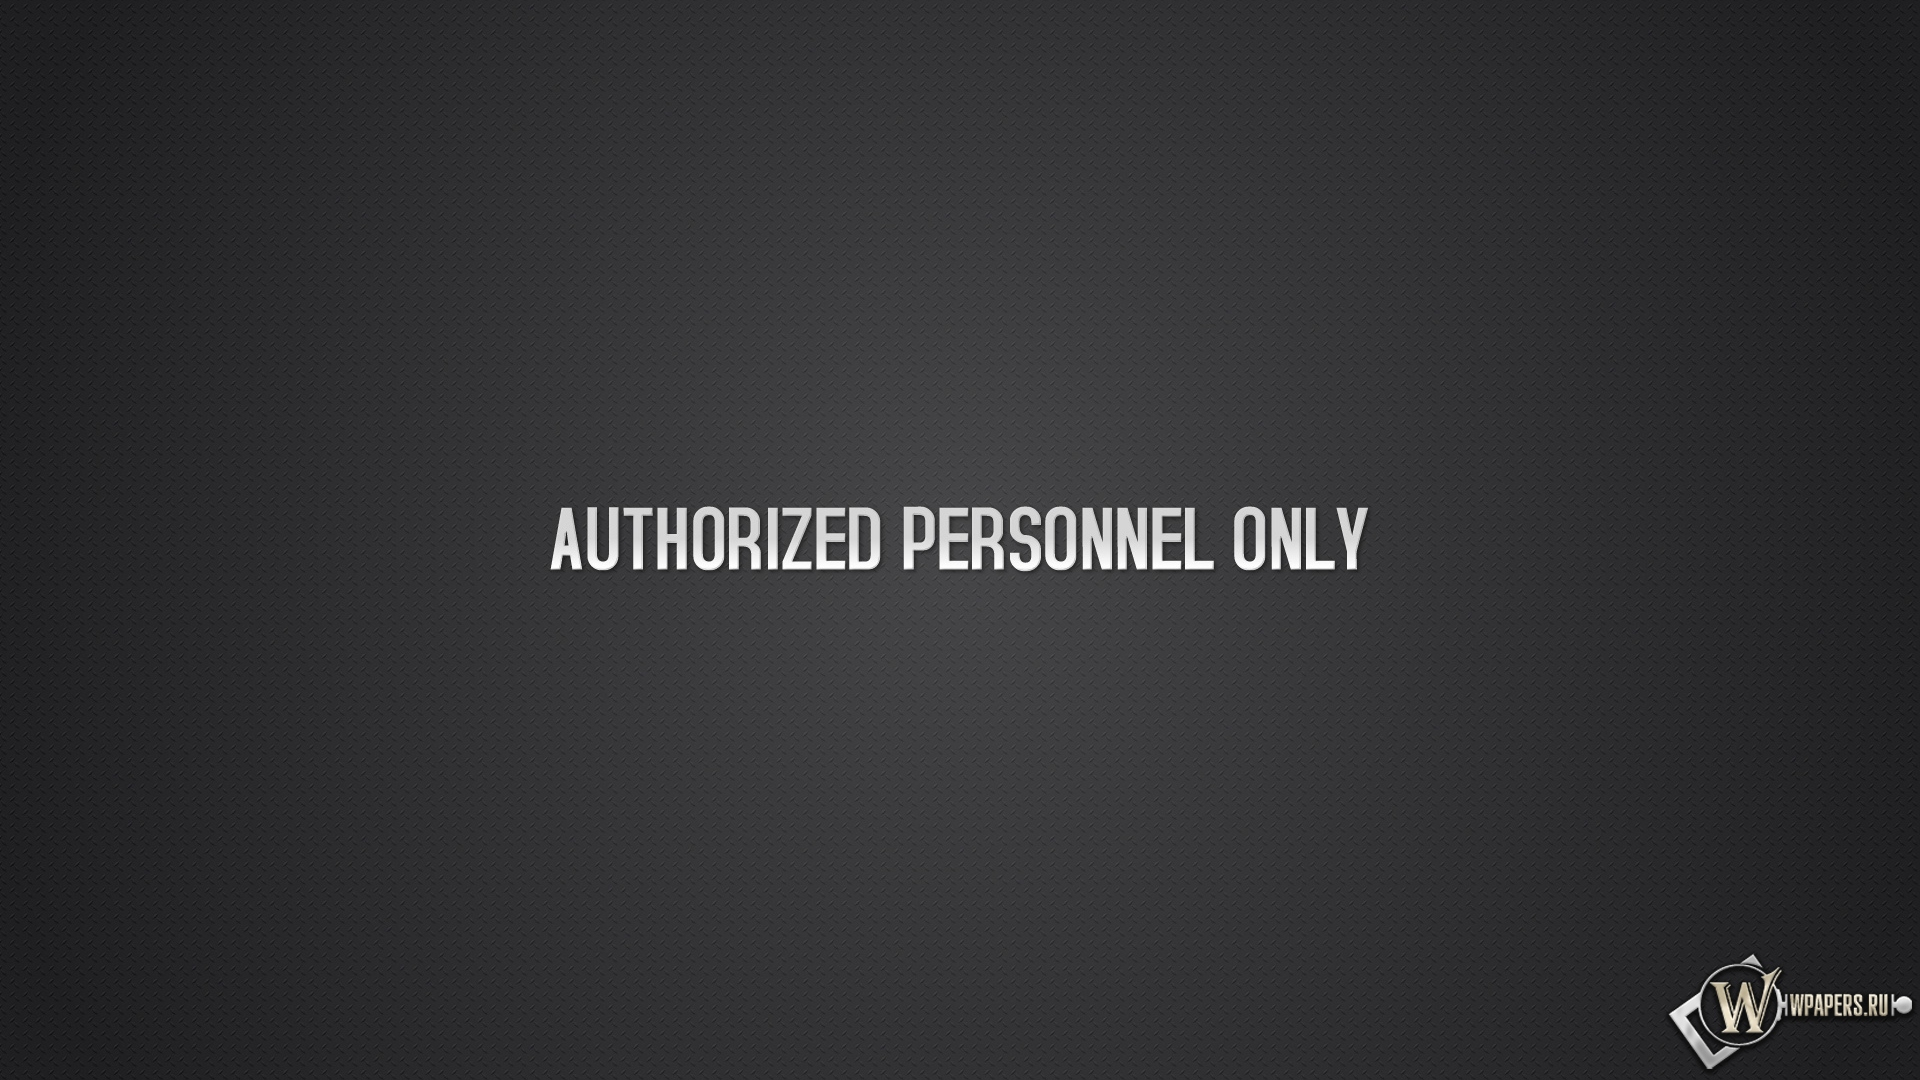 Authorized personnel only 1920x1080